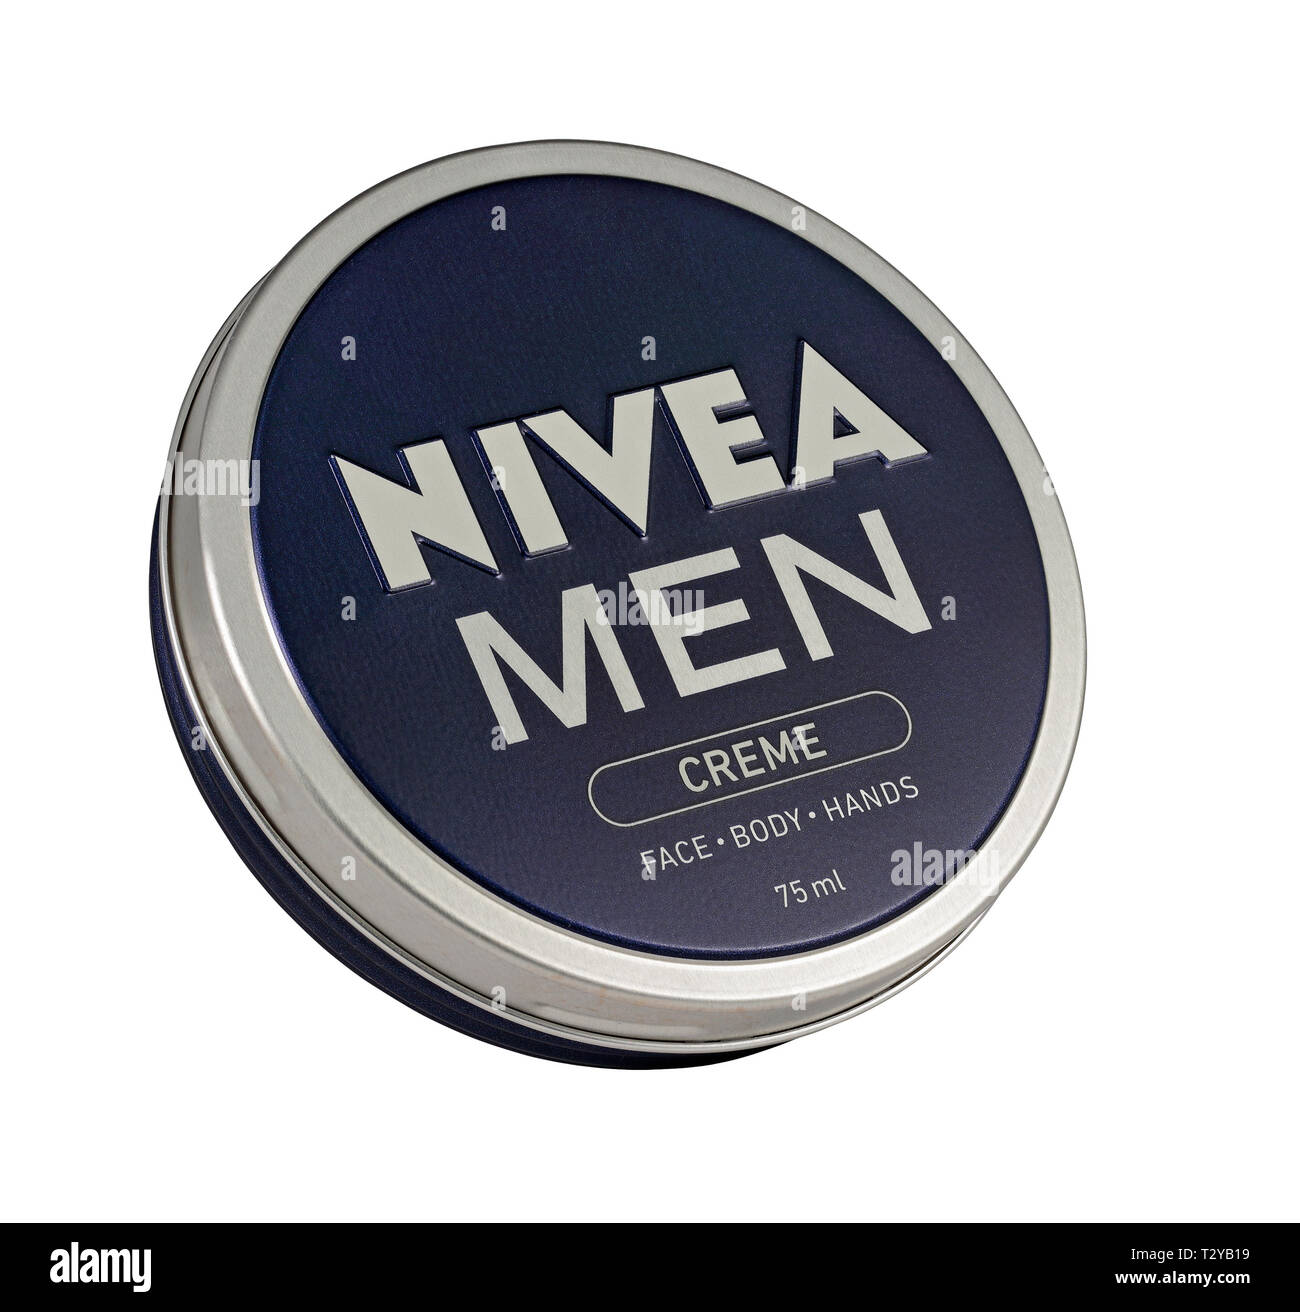 A Tin of Nivea Men face, body and hand cream / creme isolated on a white background - Stock Image